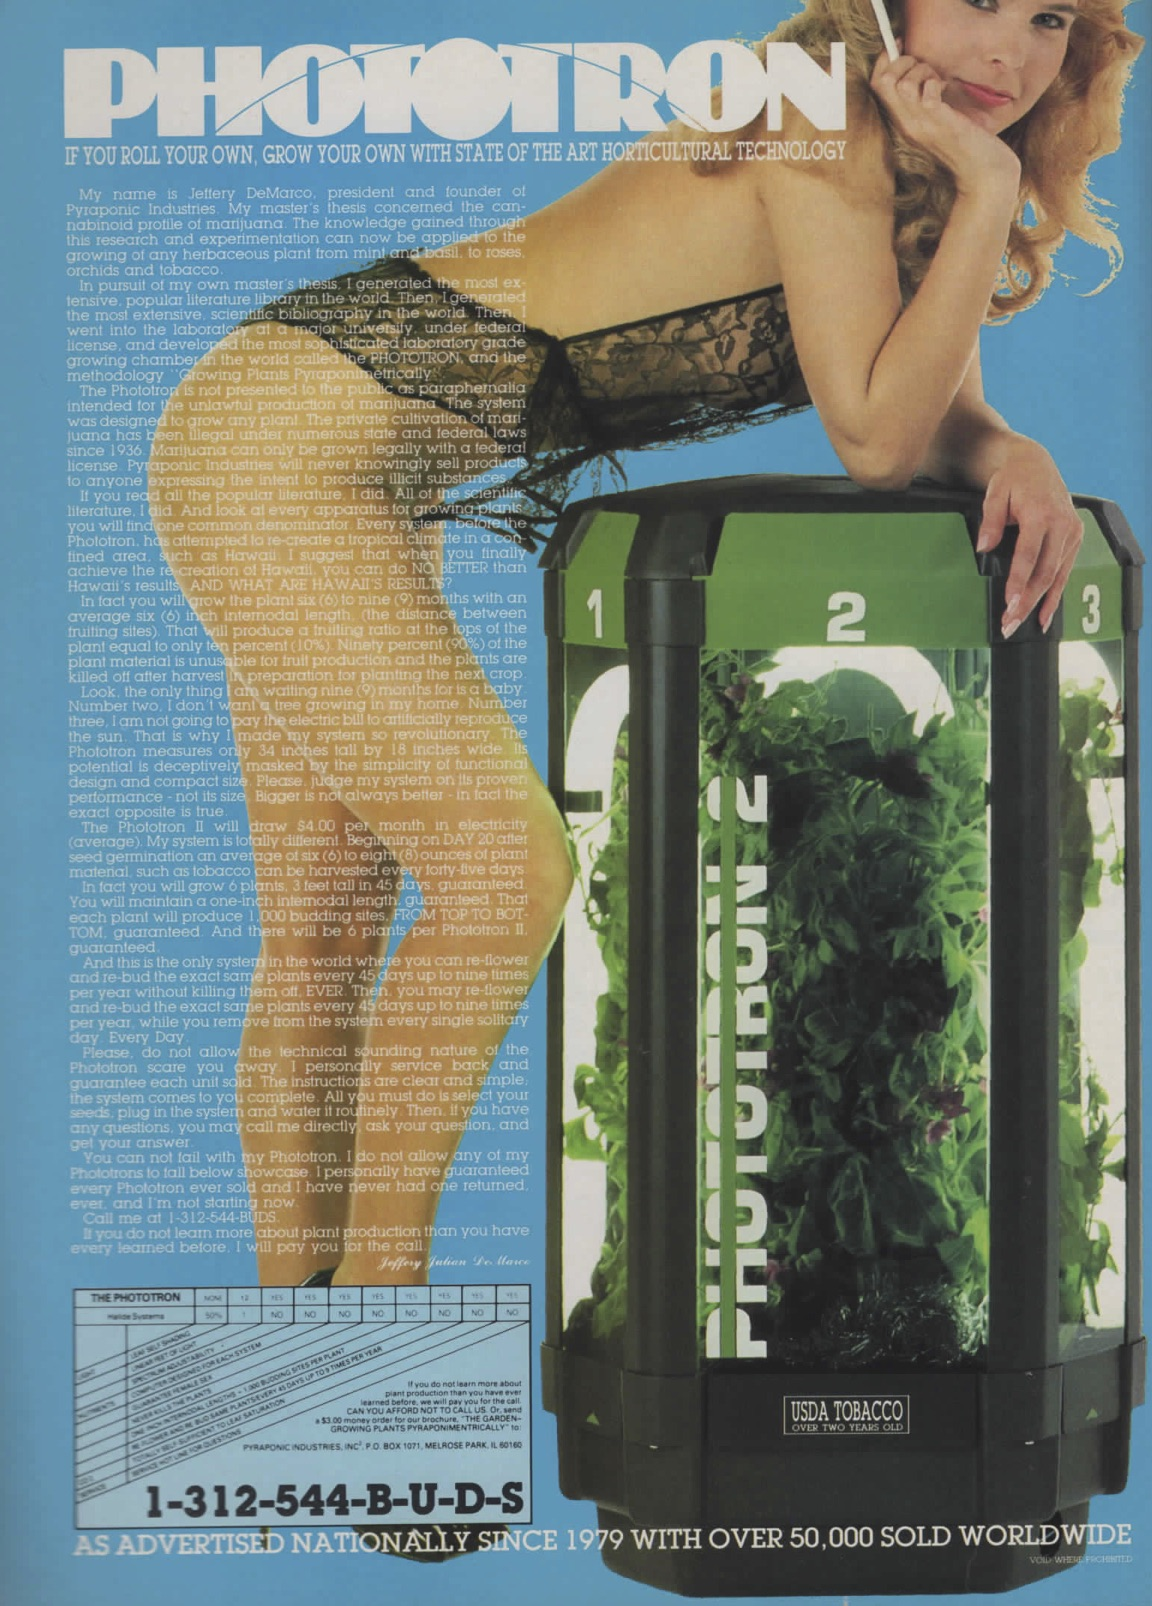 weed growing ad retro